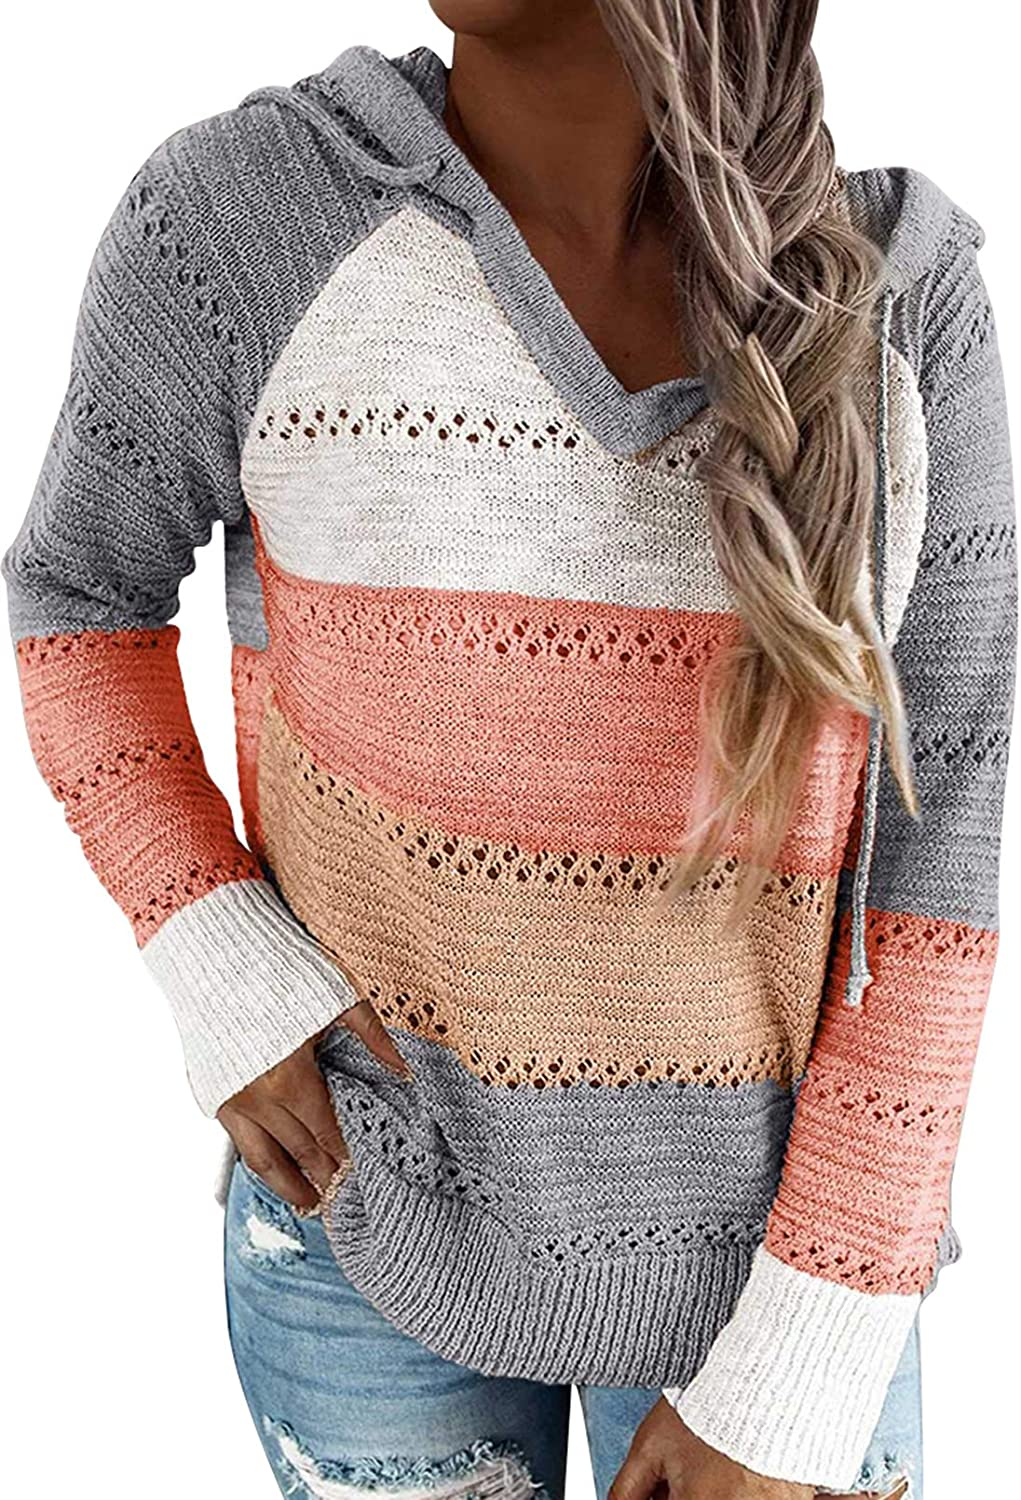 TOLENY Ultra-Cheap Deals Women's Color Block Pullover Li Hollow Sweater Hoodie Out Max 87% OFF